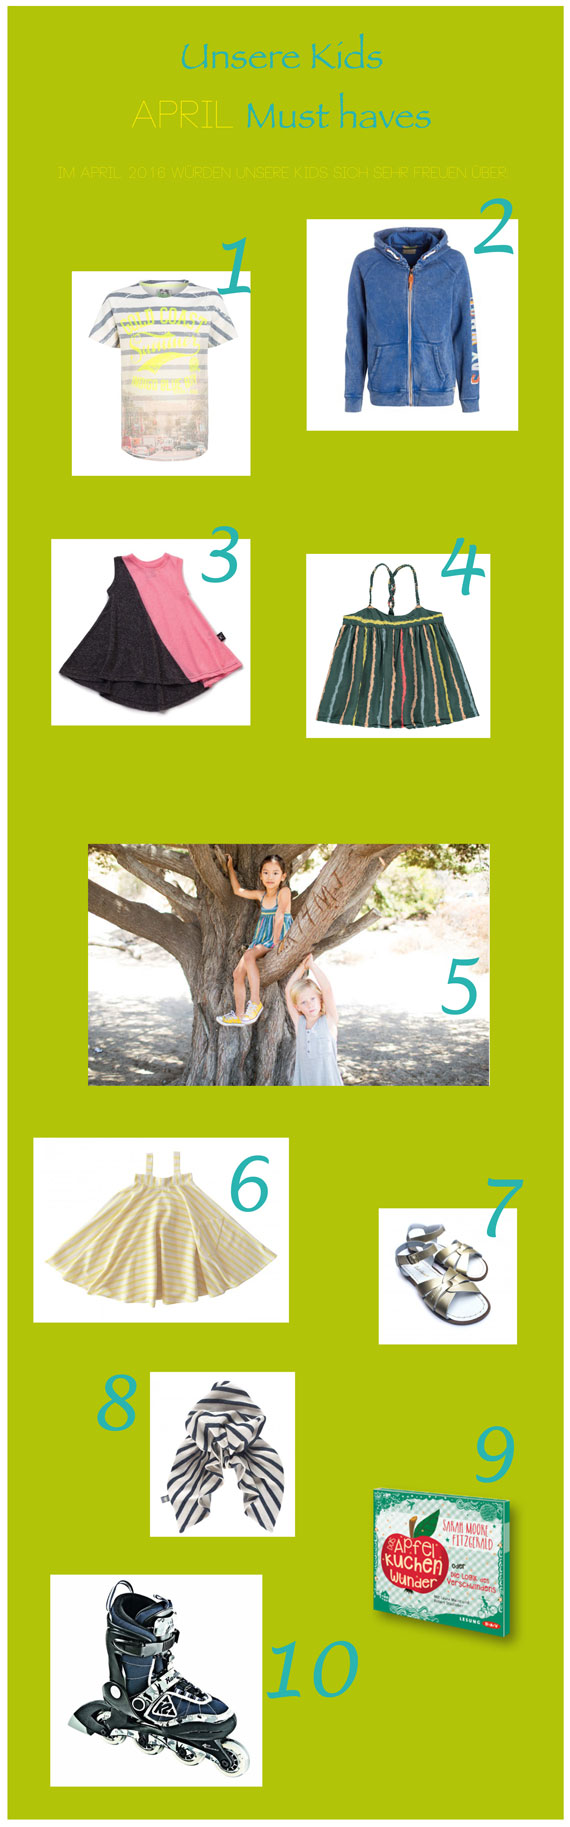 April-Kids-Must-haves-2016